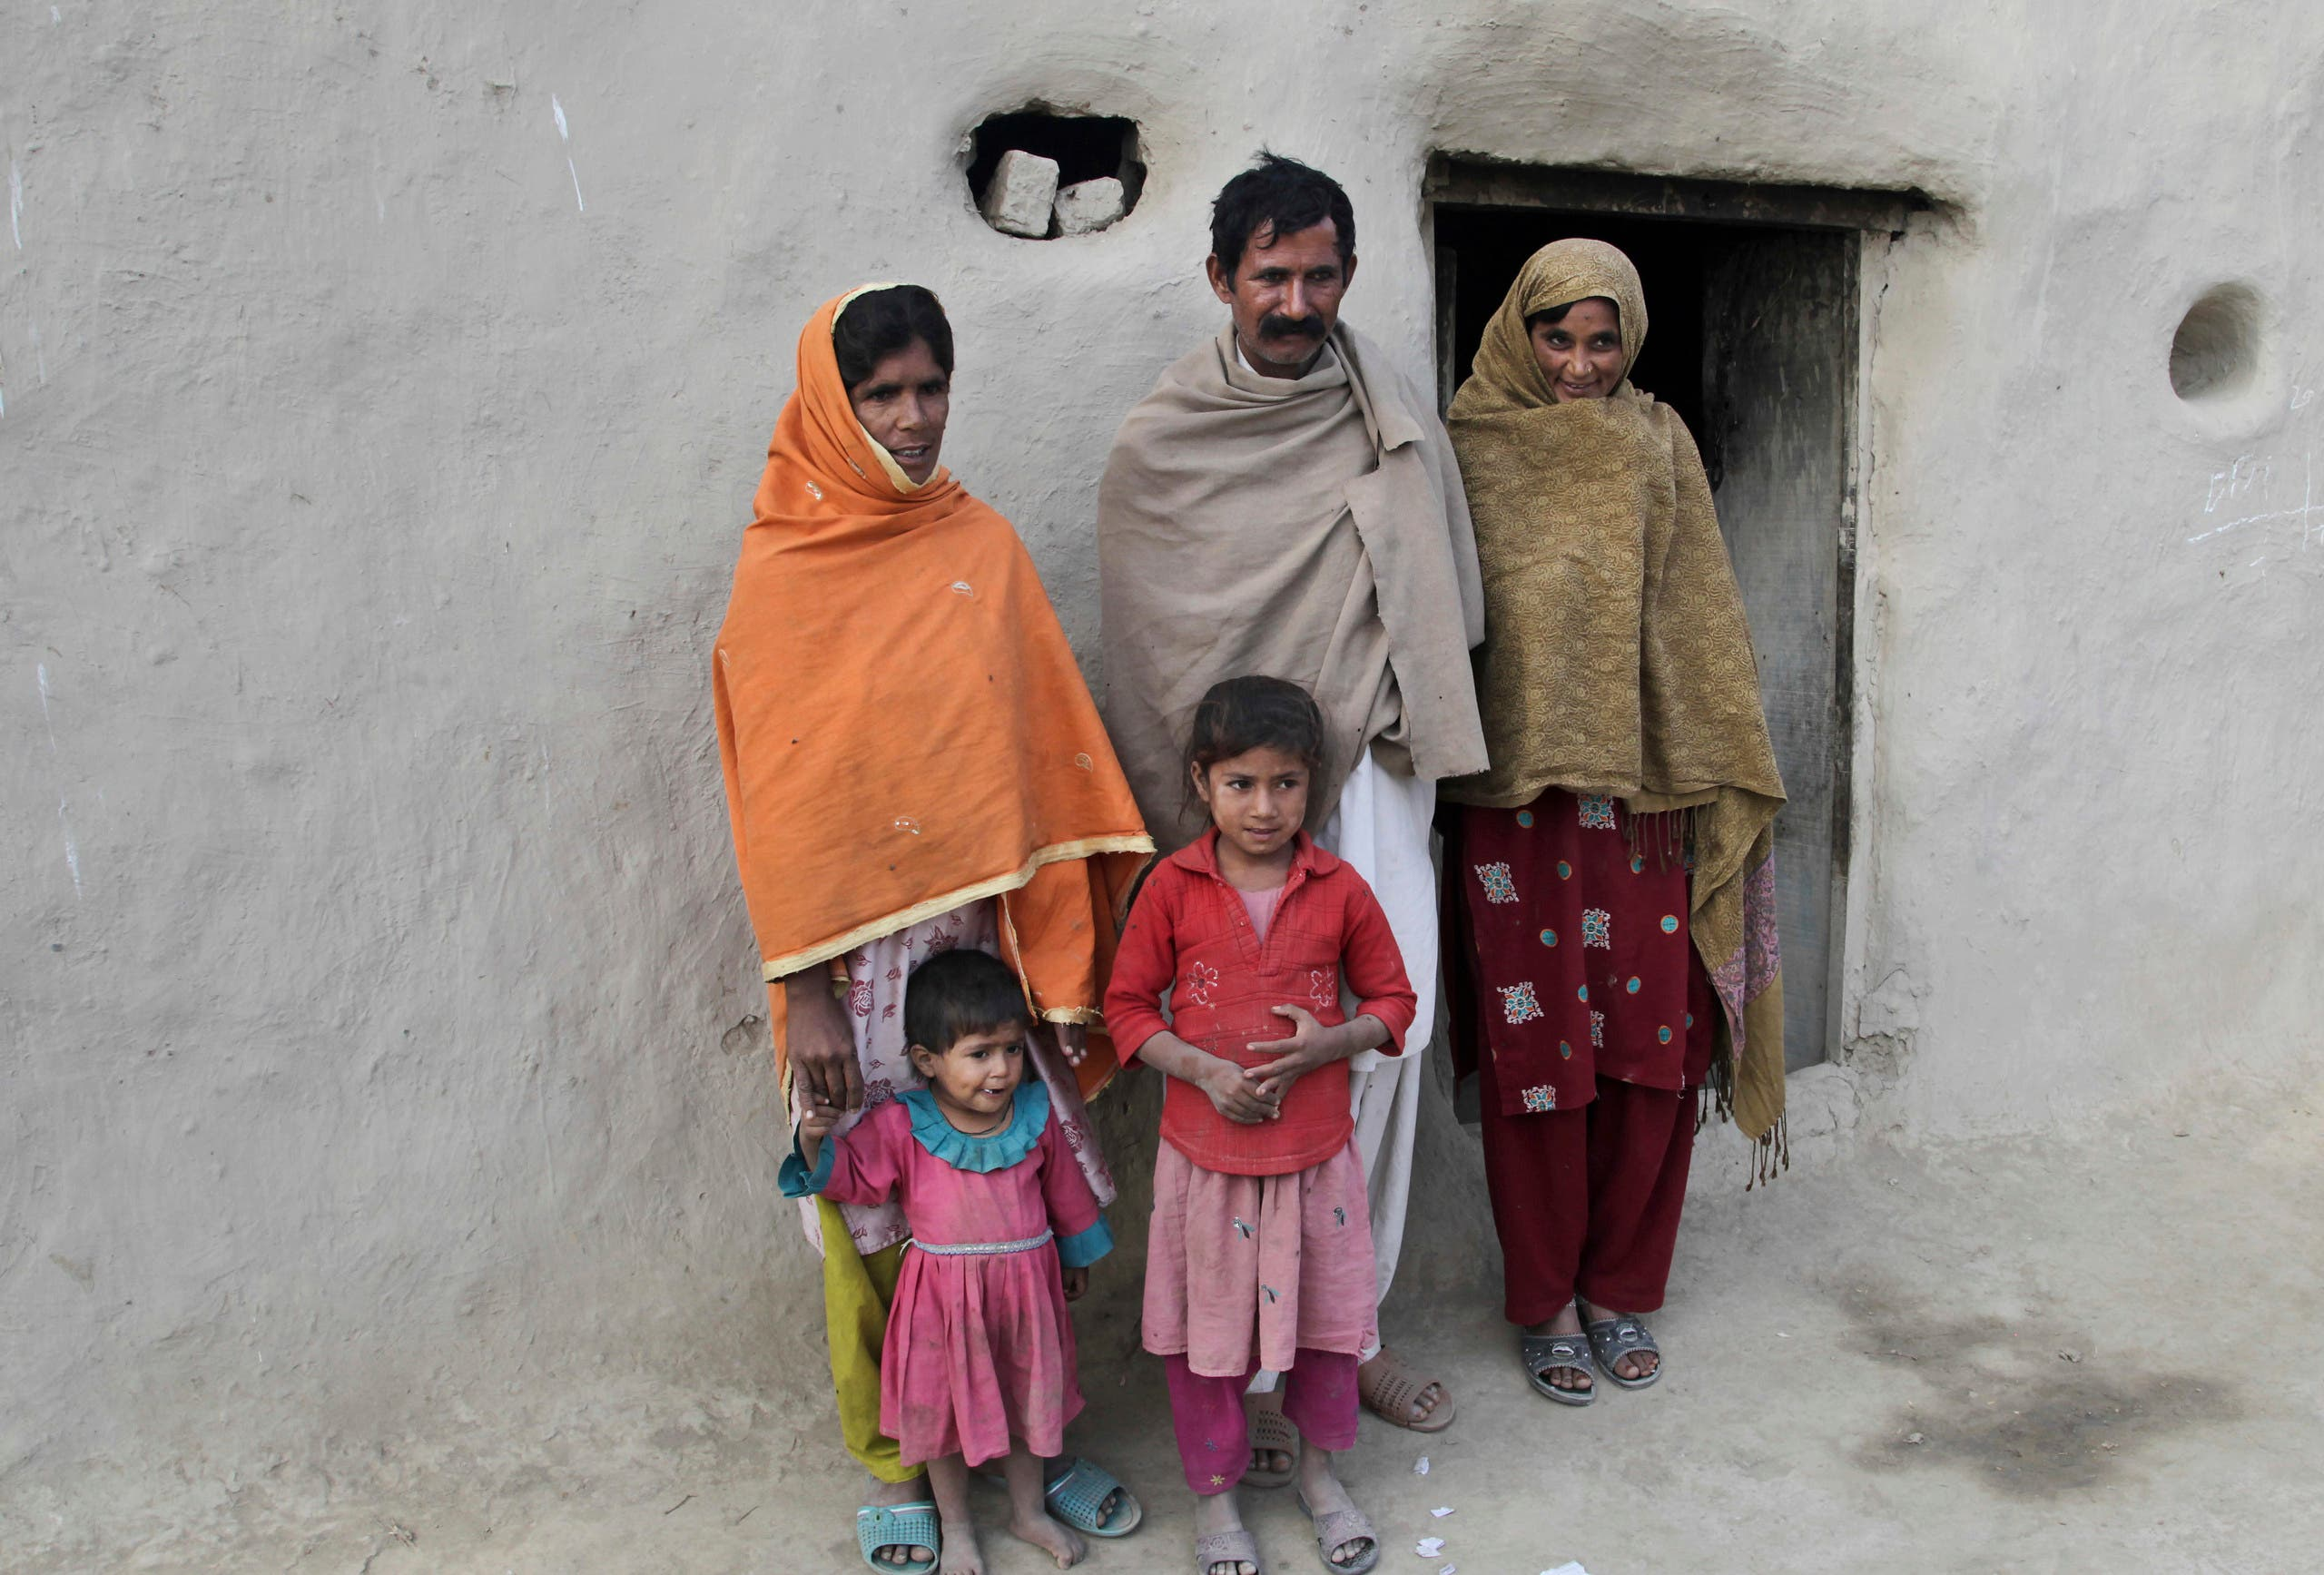 Wazir Ahmed, father of Saima who married Mohammad Ramzan, stands with his wives Sabeel right, and Jannat in Jampur, Pakistan. (AP)